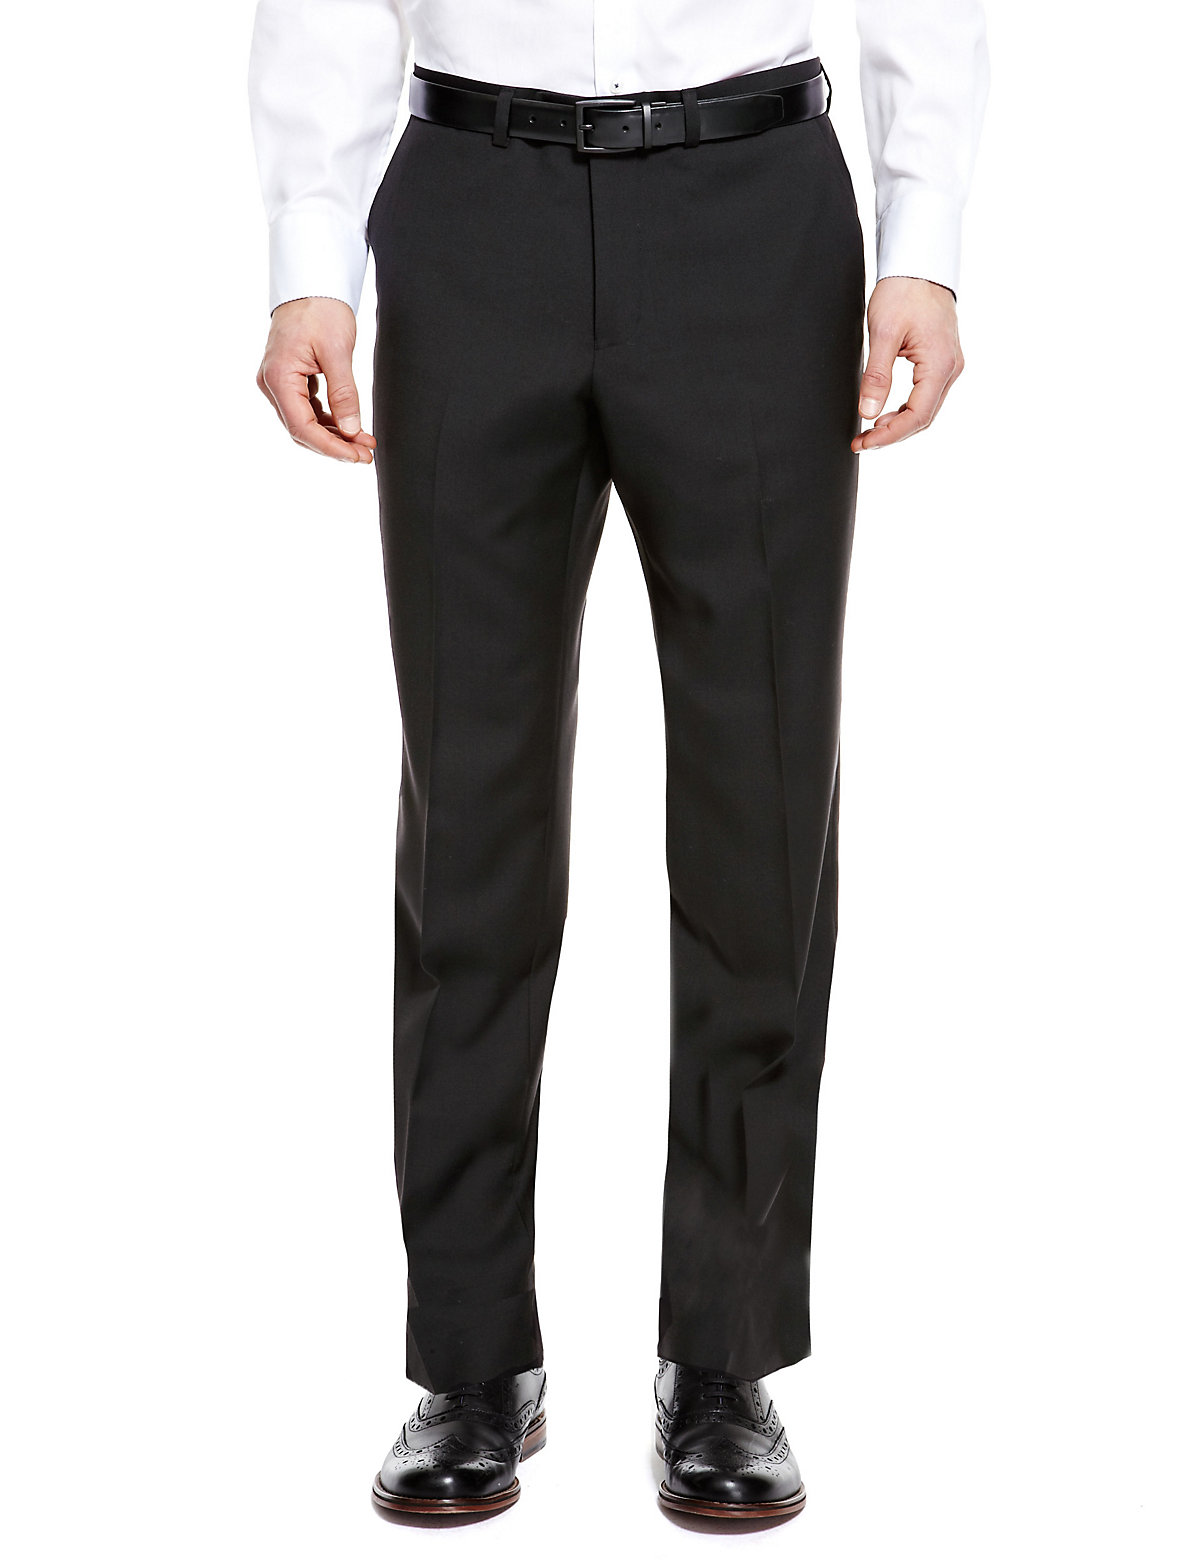 Mens Trousers MS Autograph Pure Wool Supercrease Flat Front Trousers Black 3433in